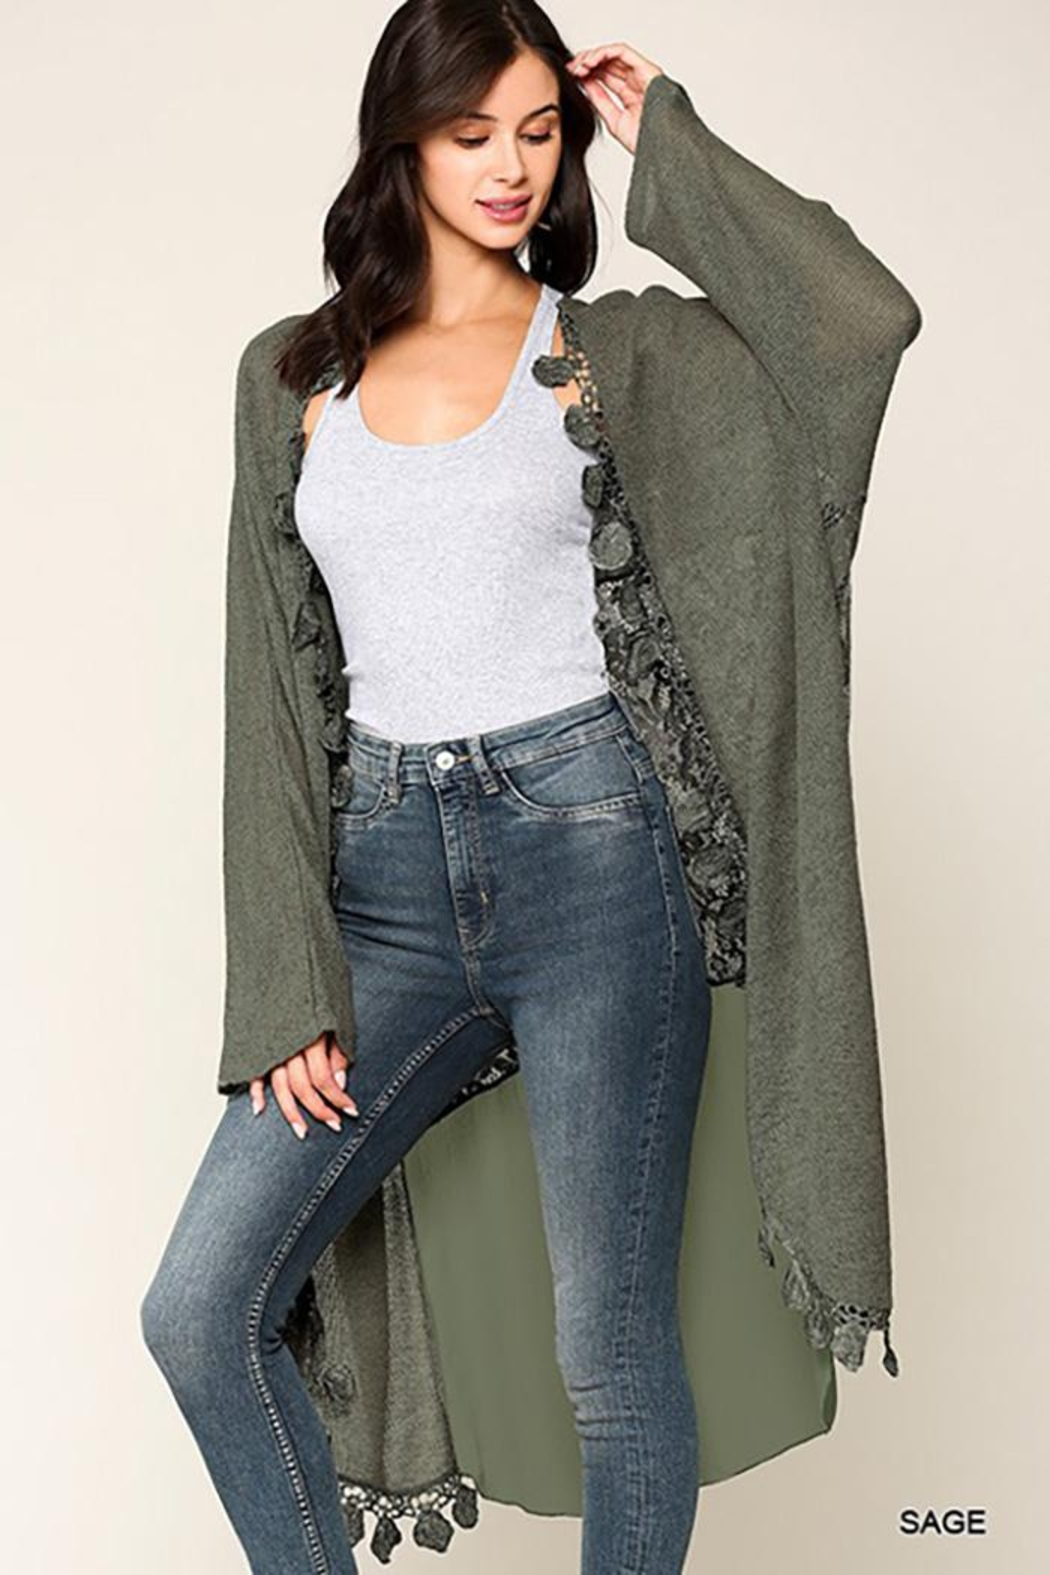 GiGiO Crochet And Lace Detailed Cardigan - Main Image